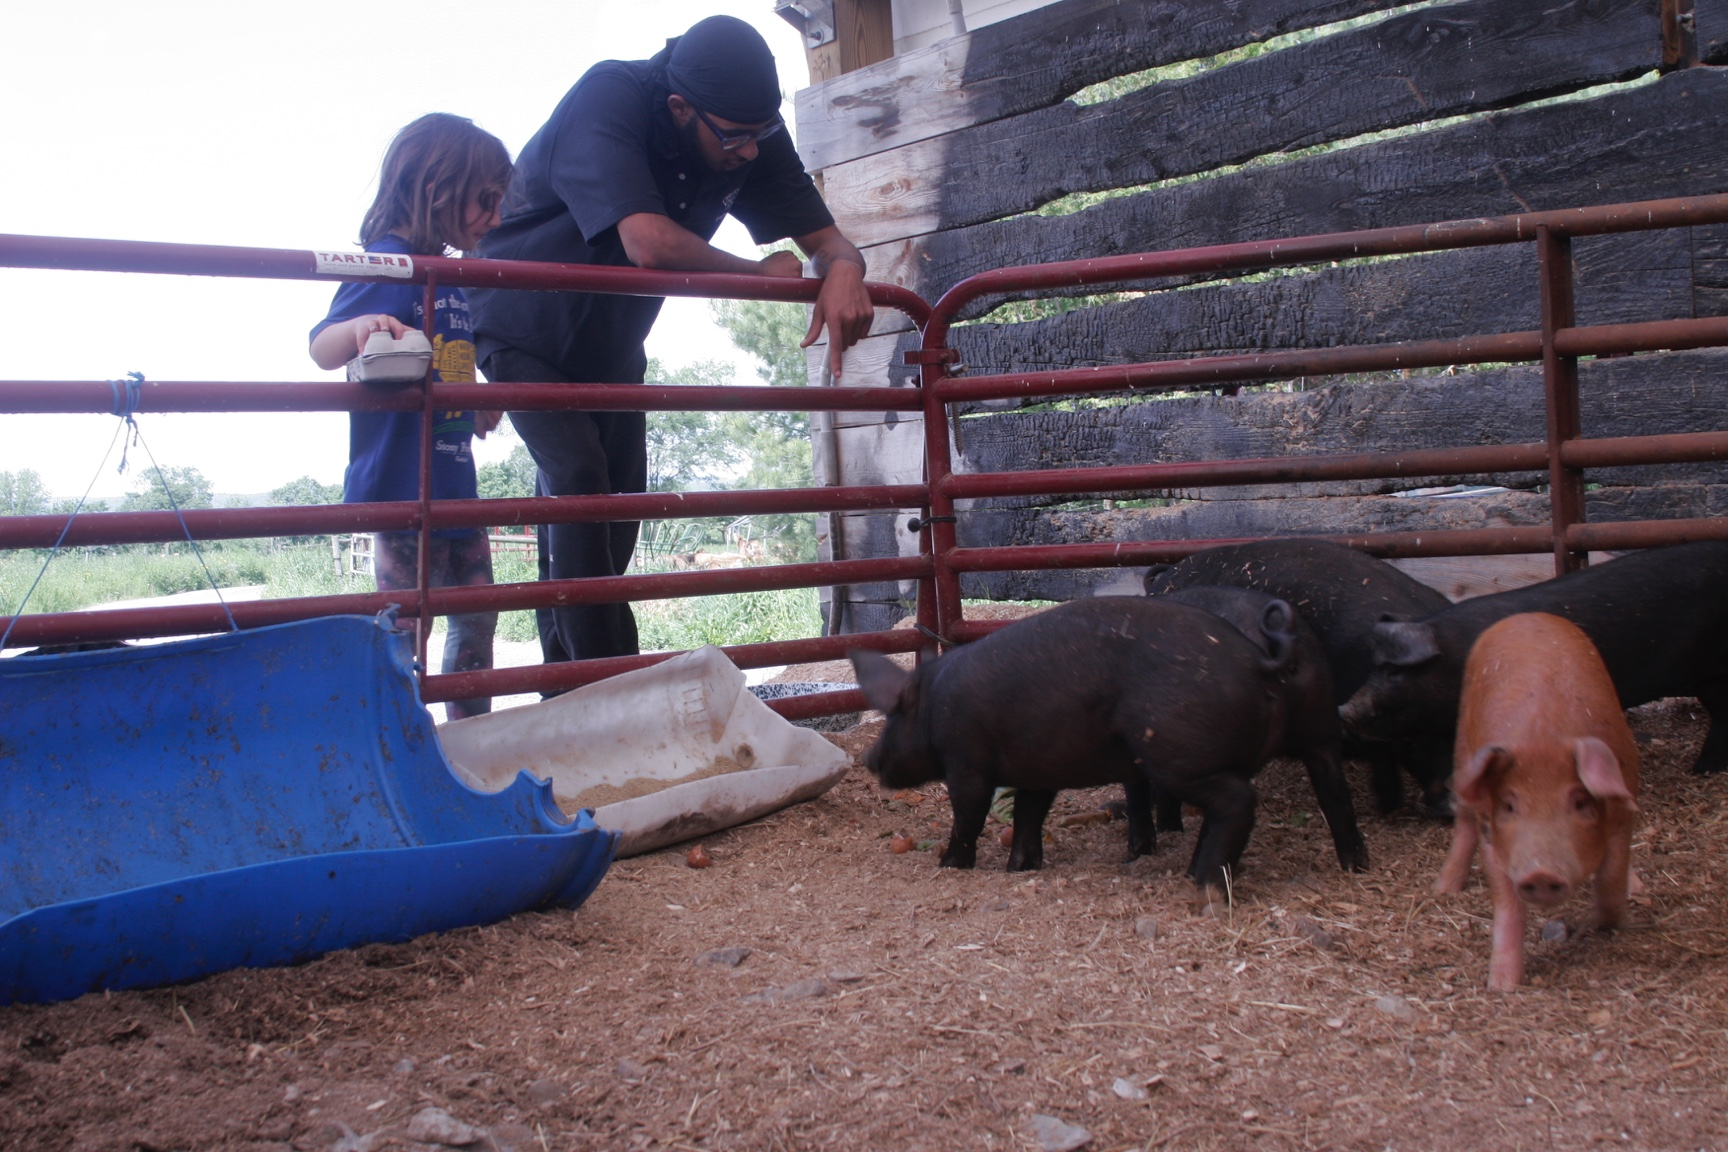 A young girl and young man lean on a fence to watch three black and one brown pig in their pen.